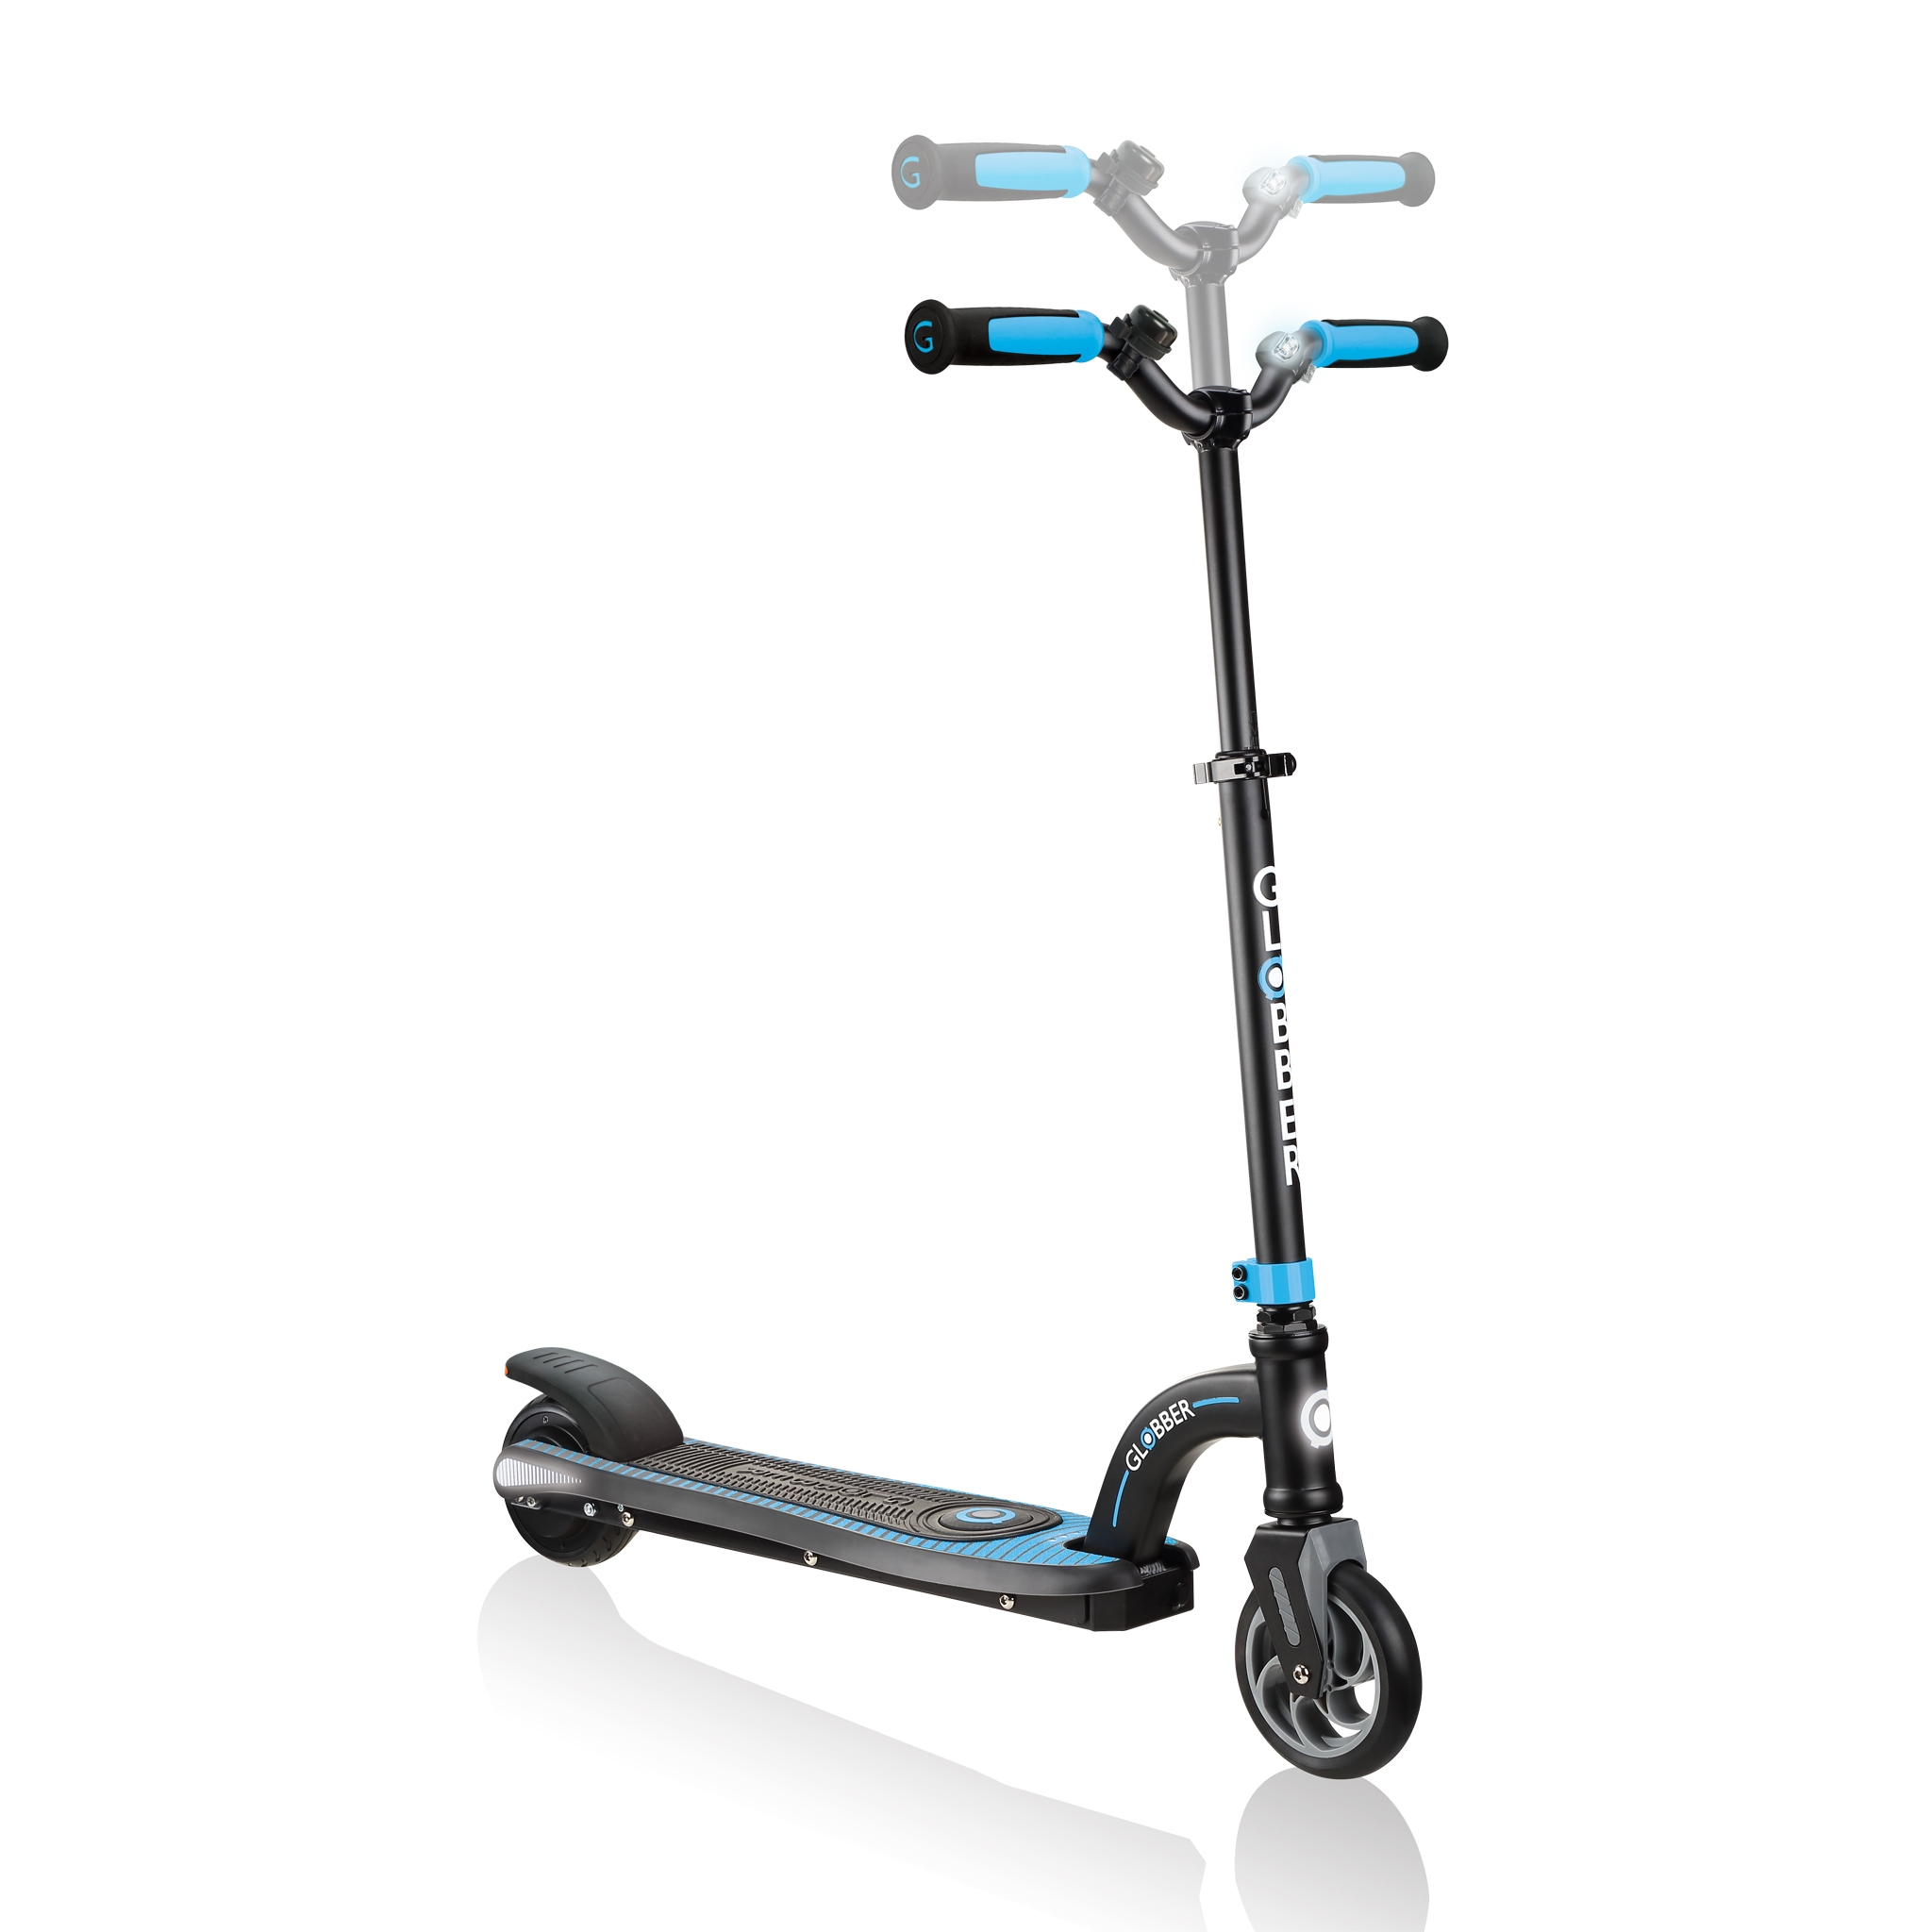 Globber-ONE-K-E-MOTION-10-best-electric-scooter-for-kids-aged-8+-adjustable-e-scooter-sky-blue 1